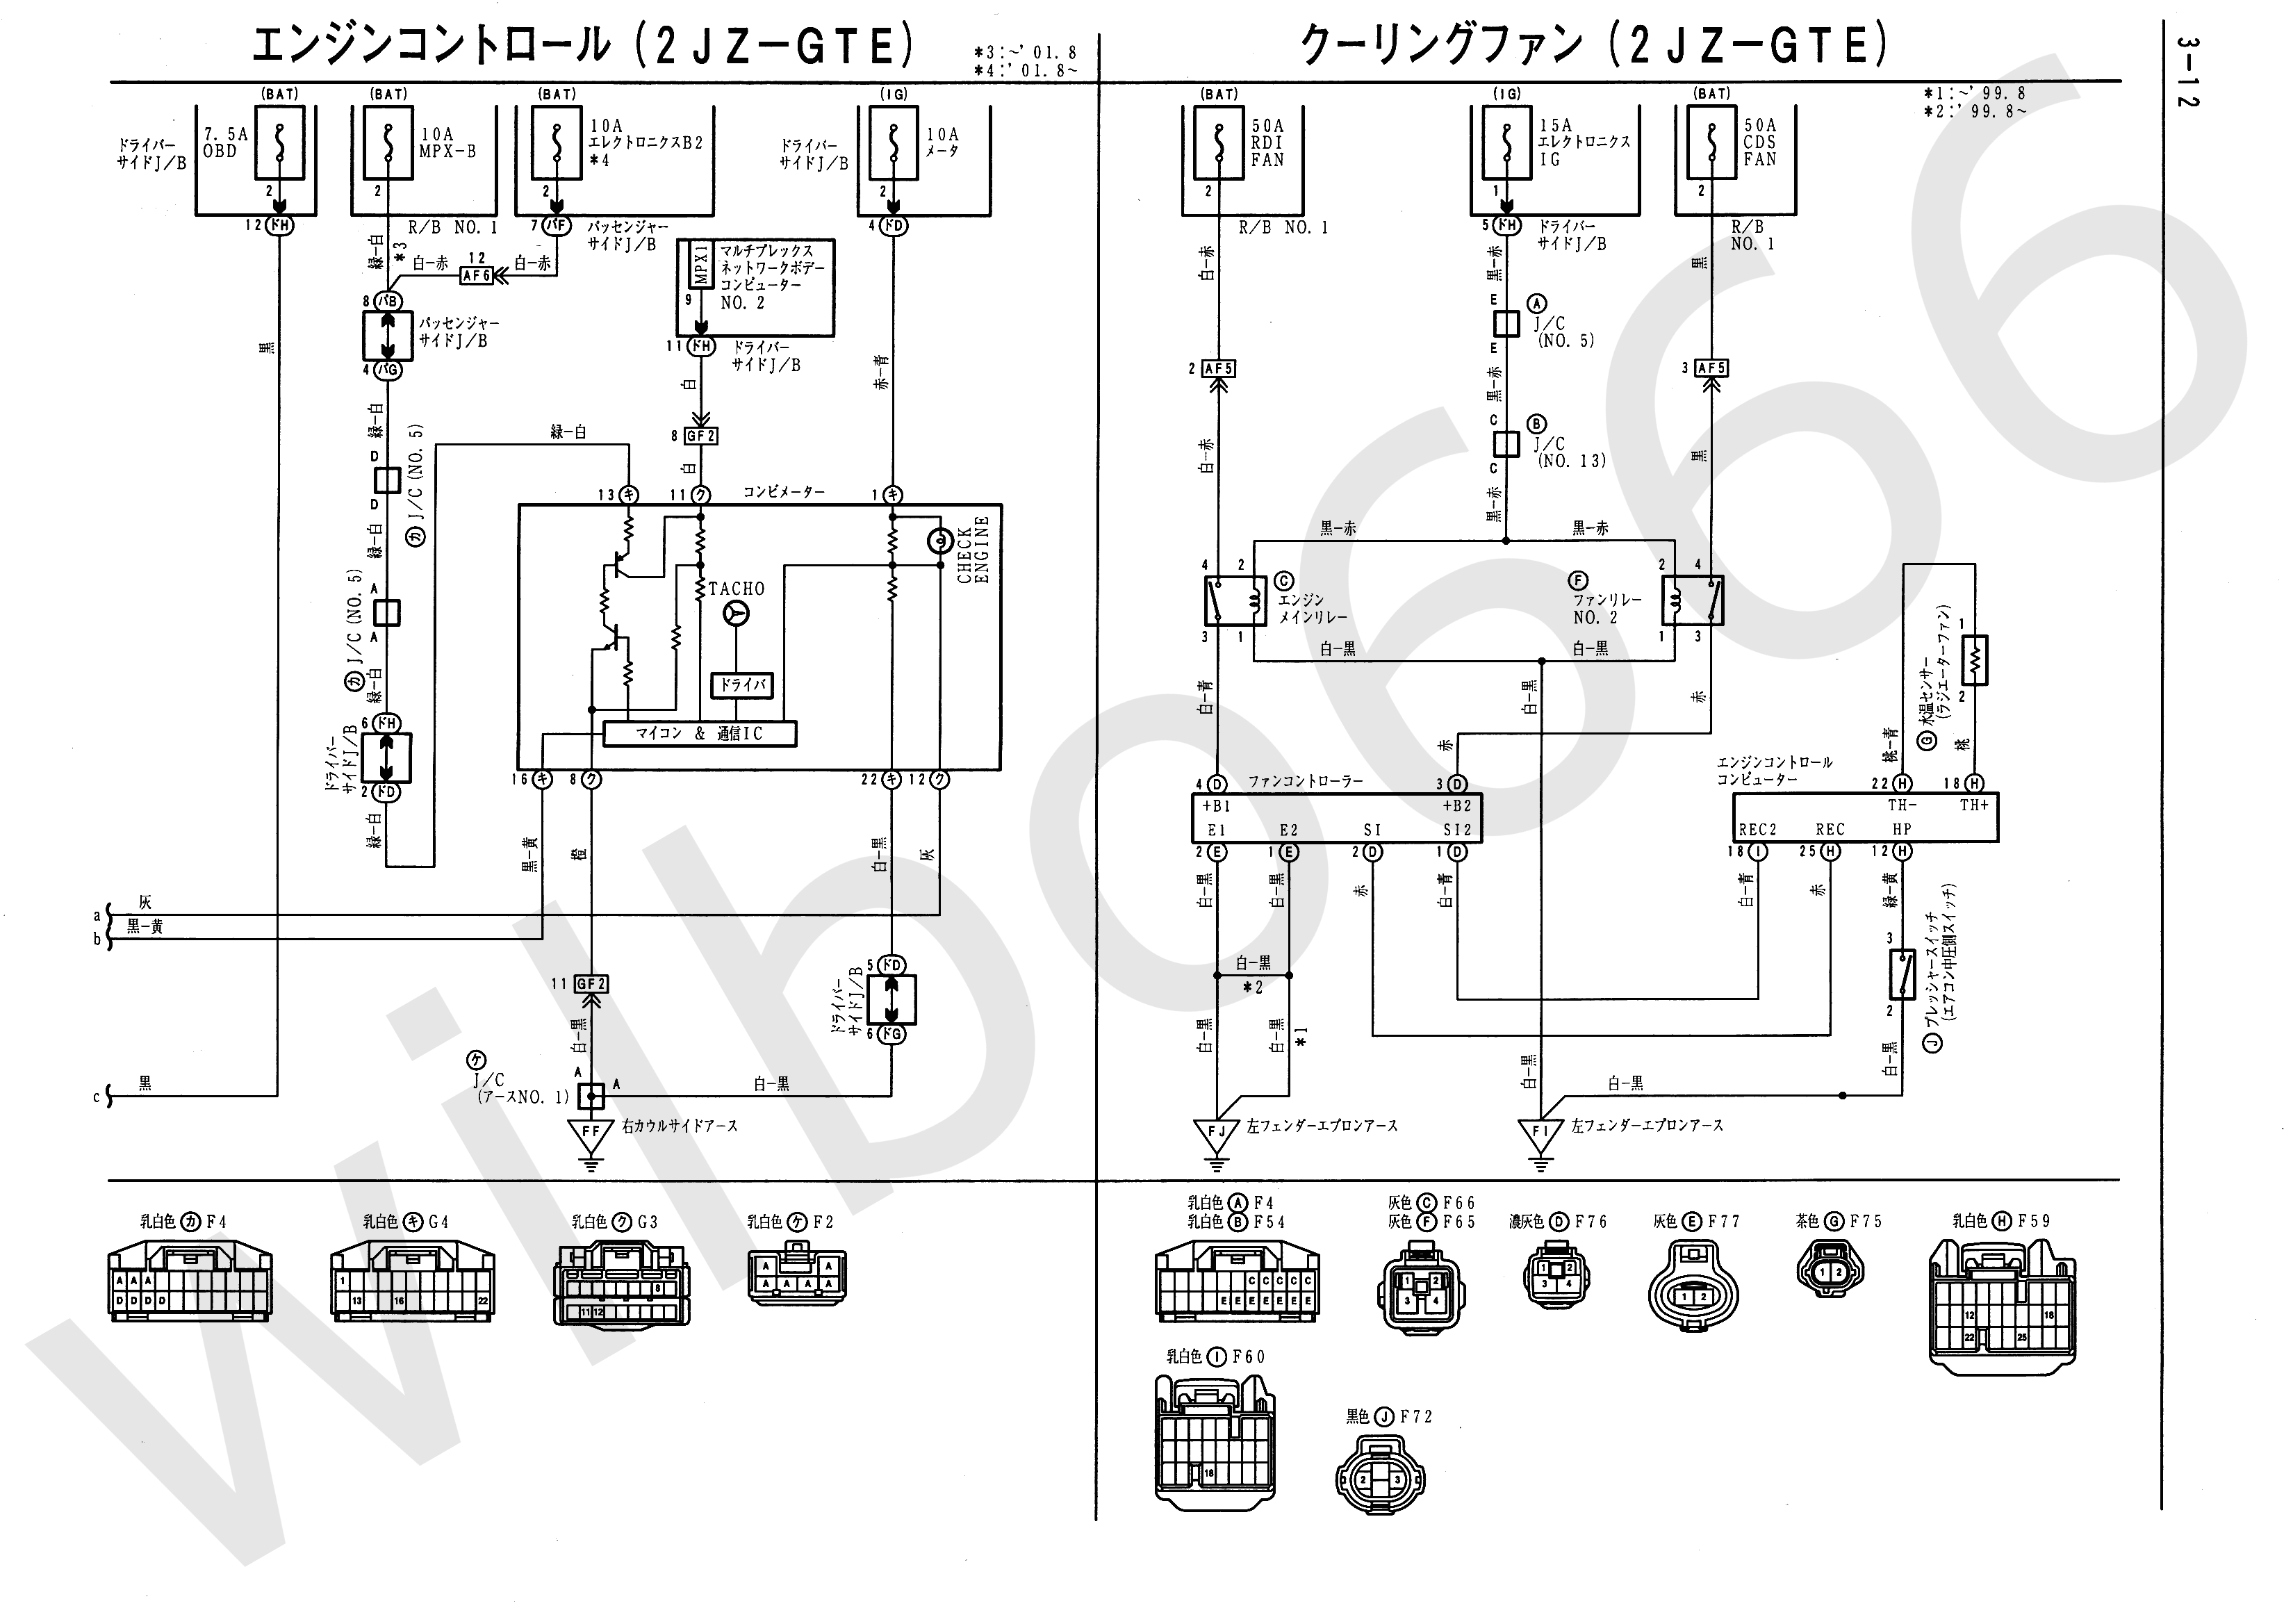 K O2 Sensor To Ecu Wiring Diagram